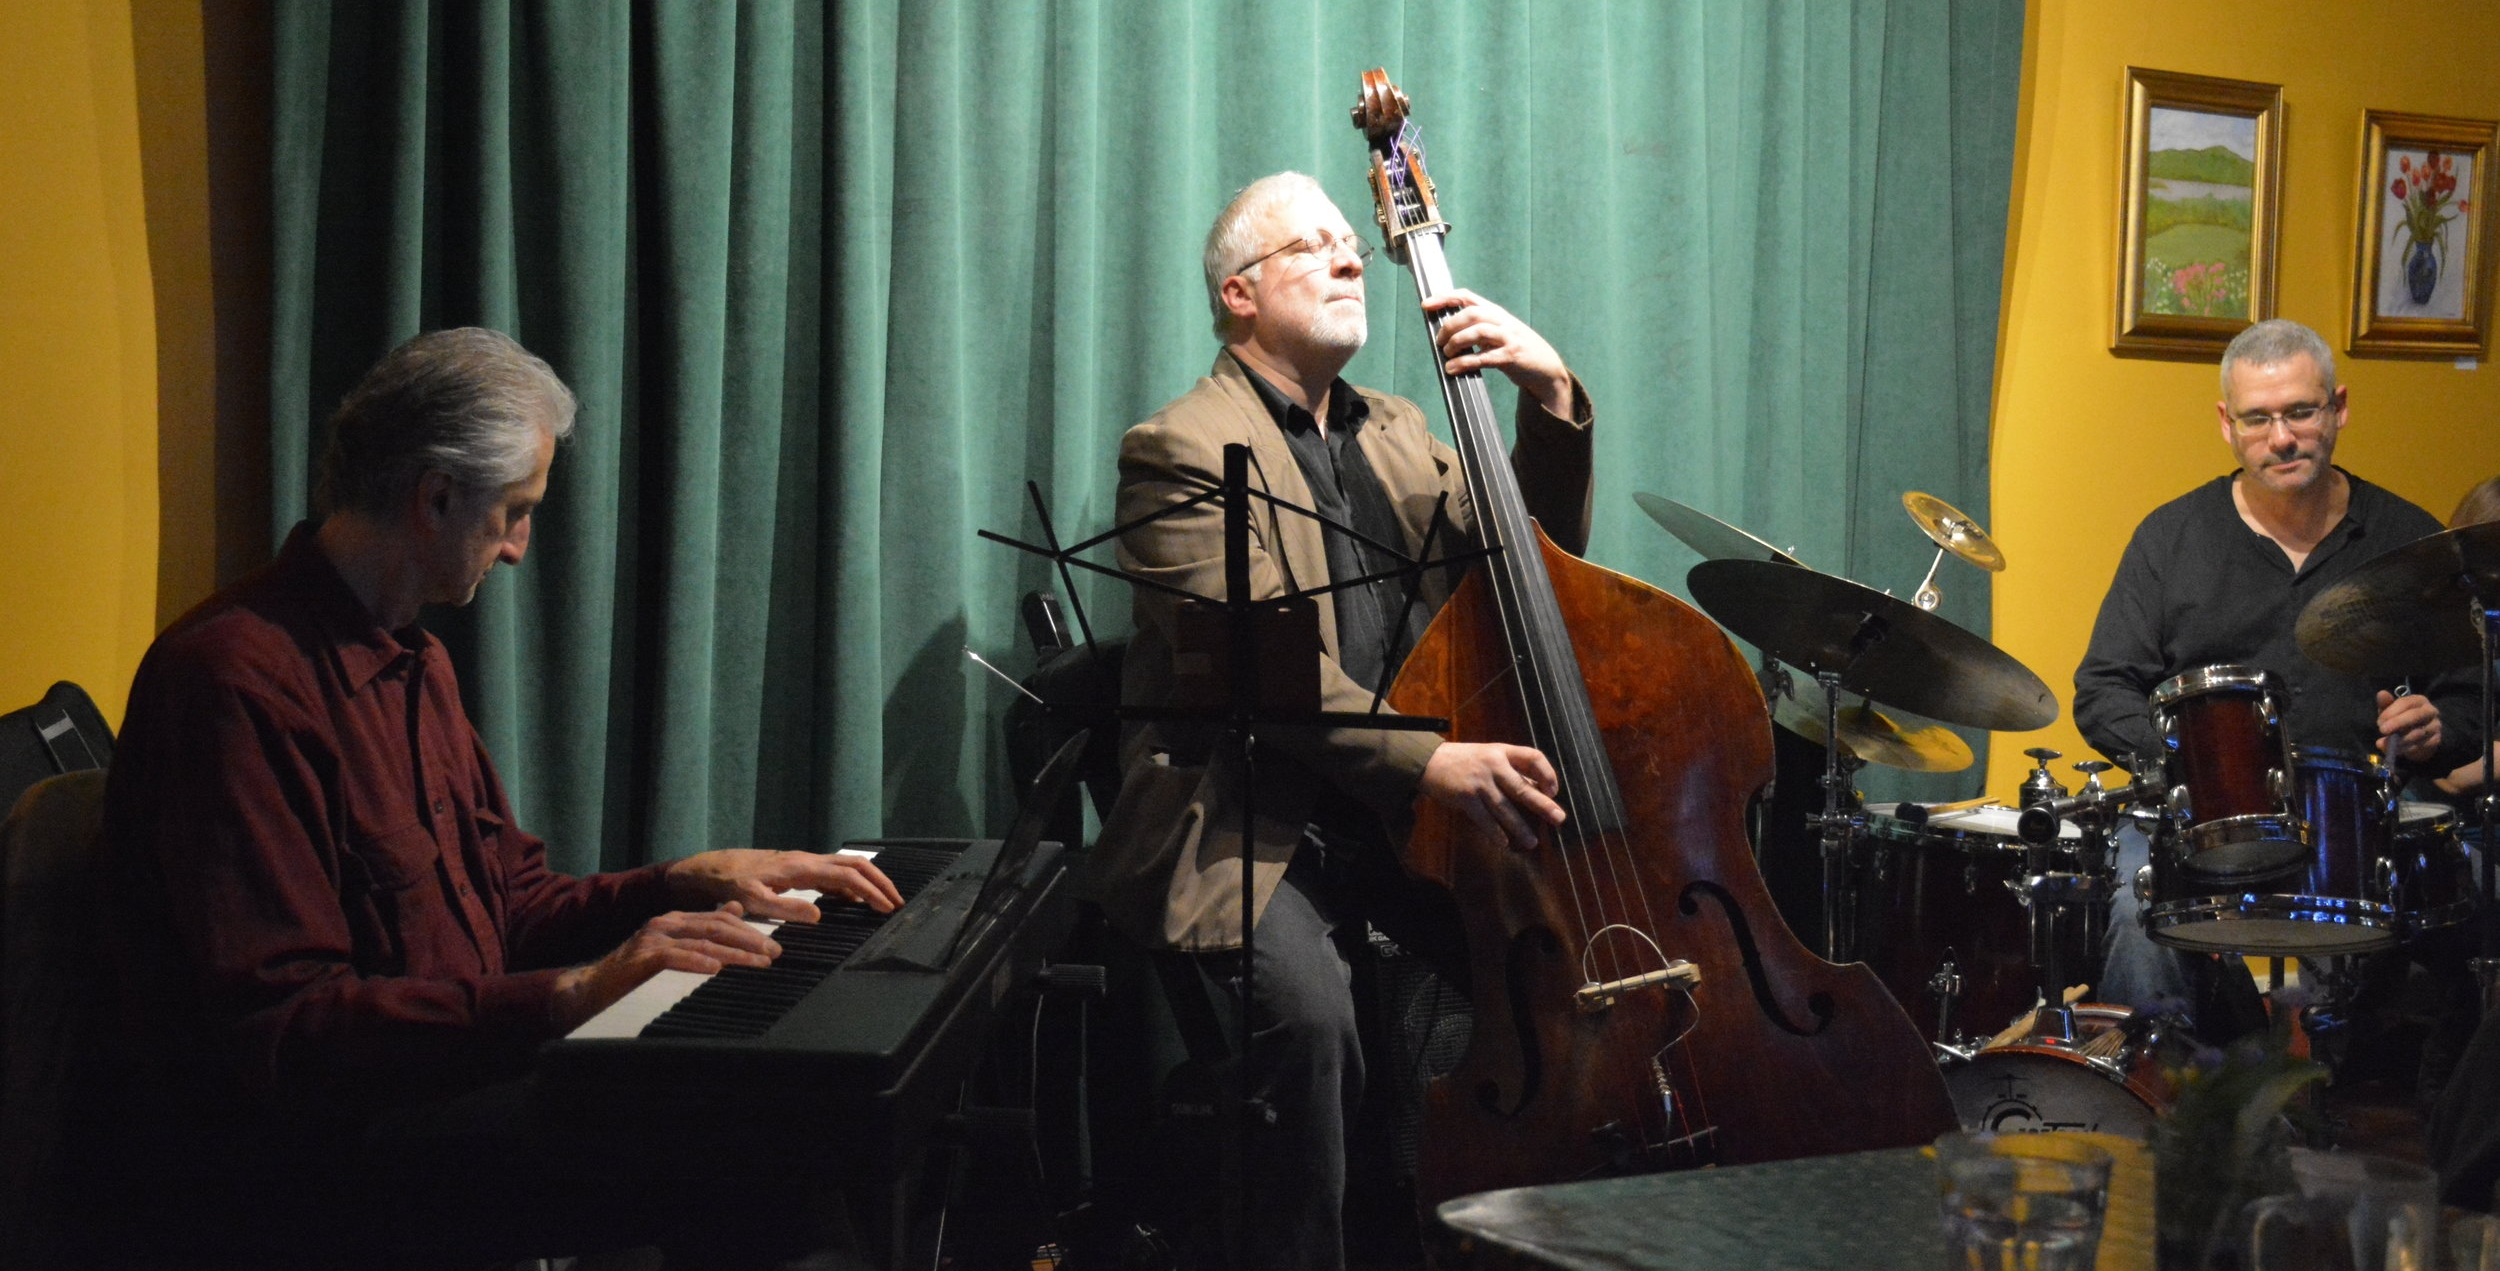 Armen Donelian (piano), Jeff Syracuse (bass) and Jeff Siegel (drums) performing on May 7, 2016 at The Rosendale Cafe, Rosendale, NY.